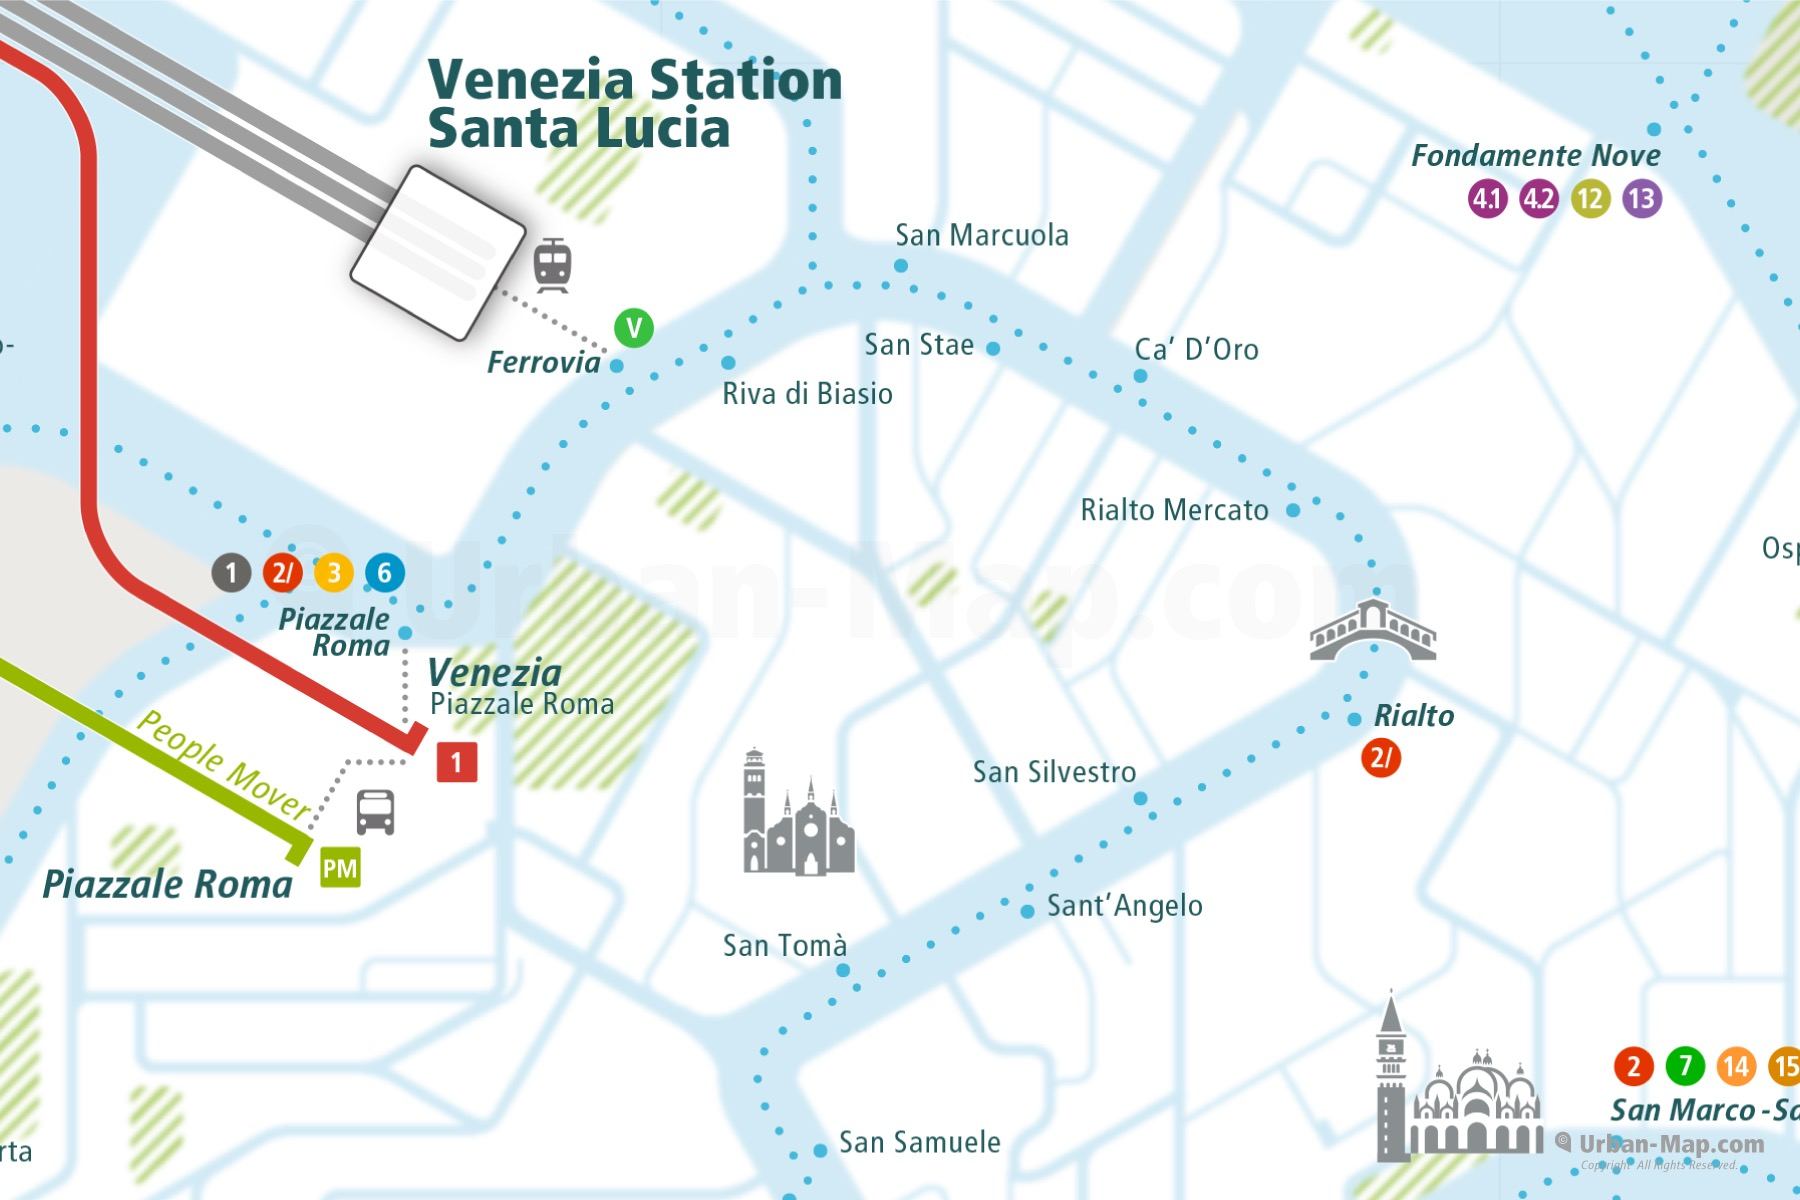 Venice City Rail Map shows the train and public transportation routes of Vaporetto, Waterbus and Ferry and Station Santa Lucia and Rialto Bridge - Close-Up